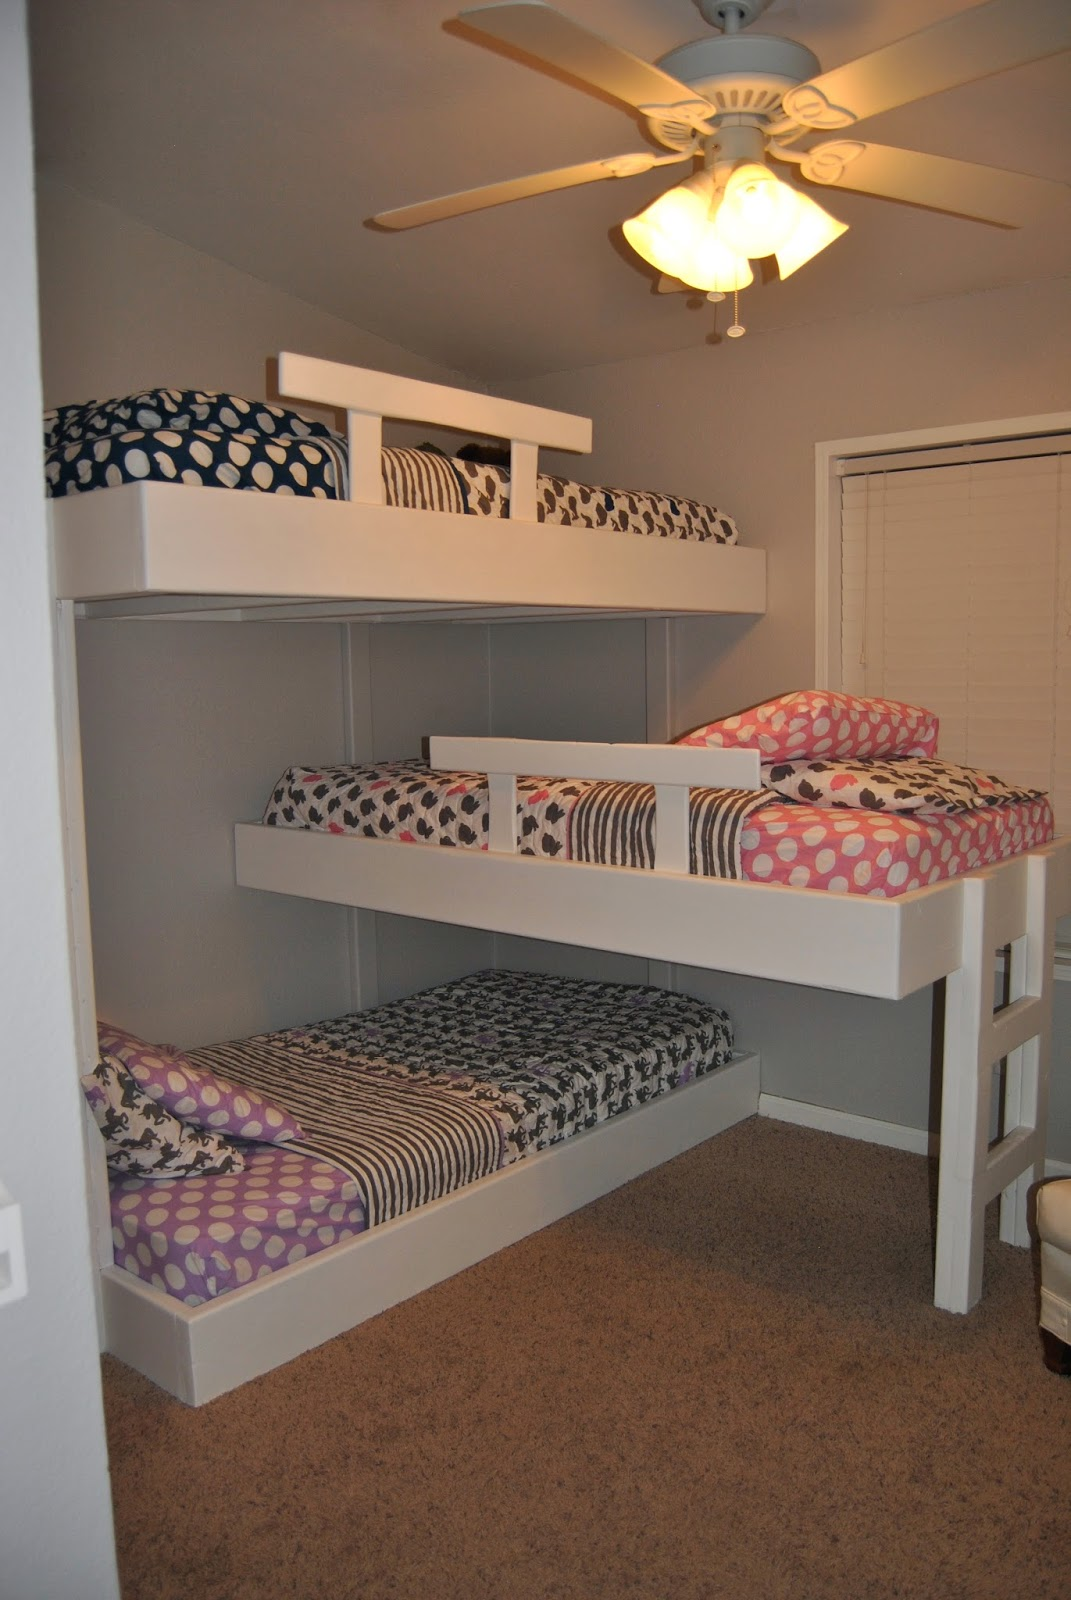 Bunk Bed Designs For Kids Room: Life With Mack, Macy & Molly : Triple Bunk Beds